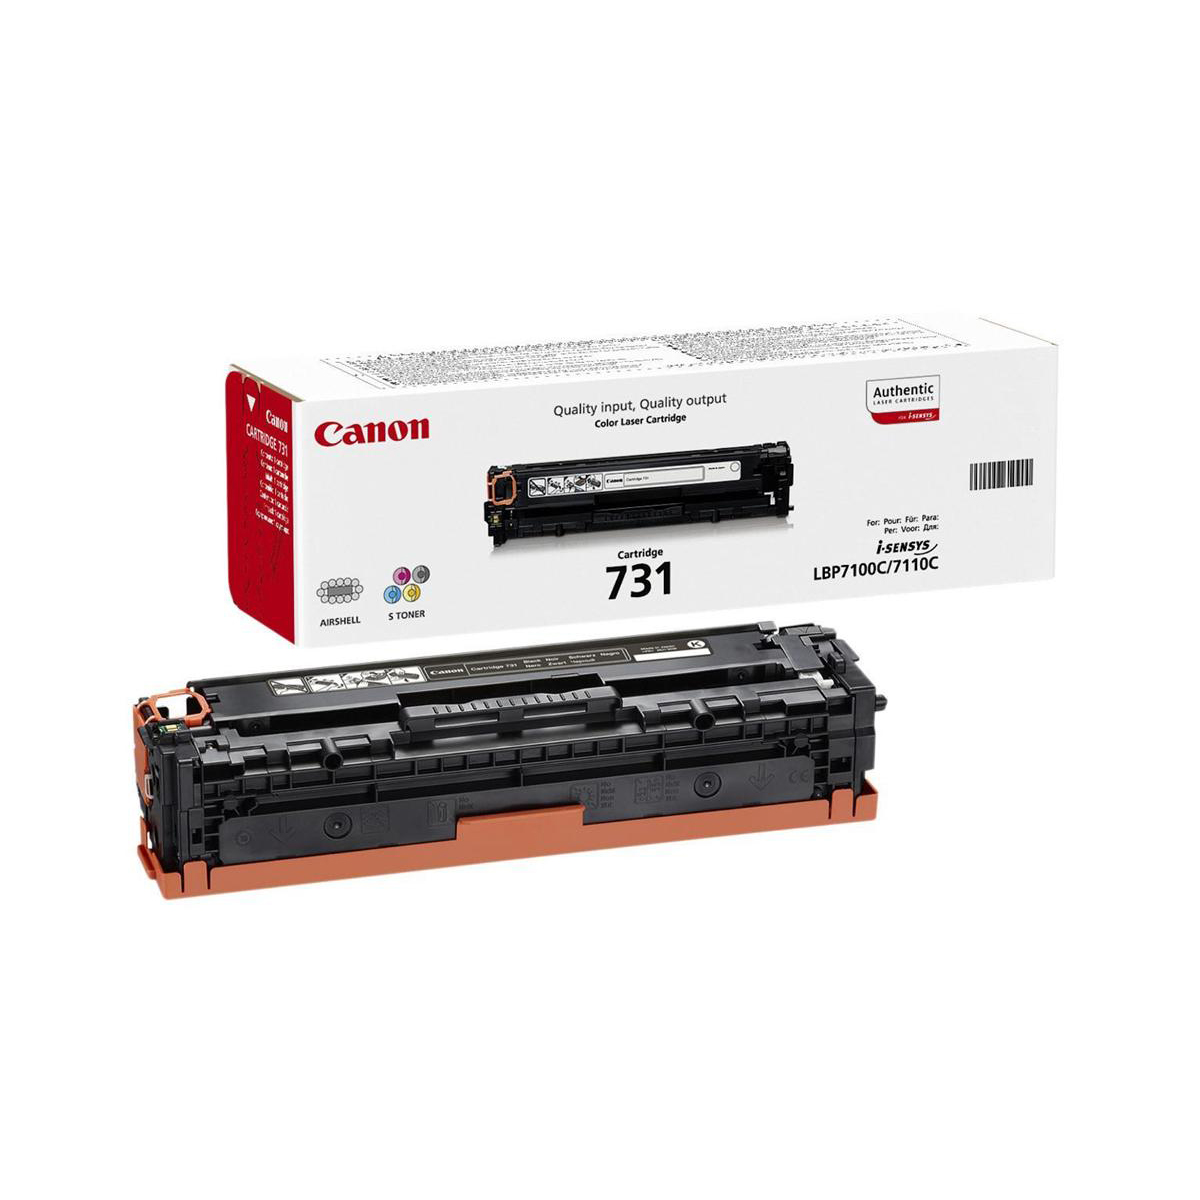 Canon 731 Laser Toner Cartridge Page Life 1500pp Magenta Ref CANON731M